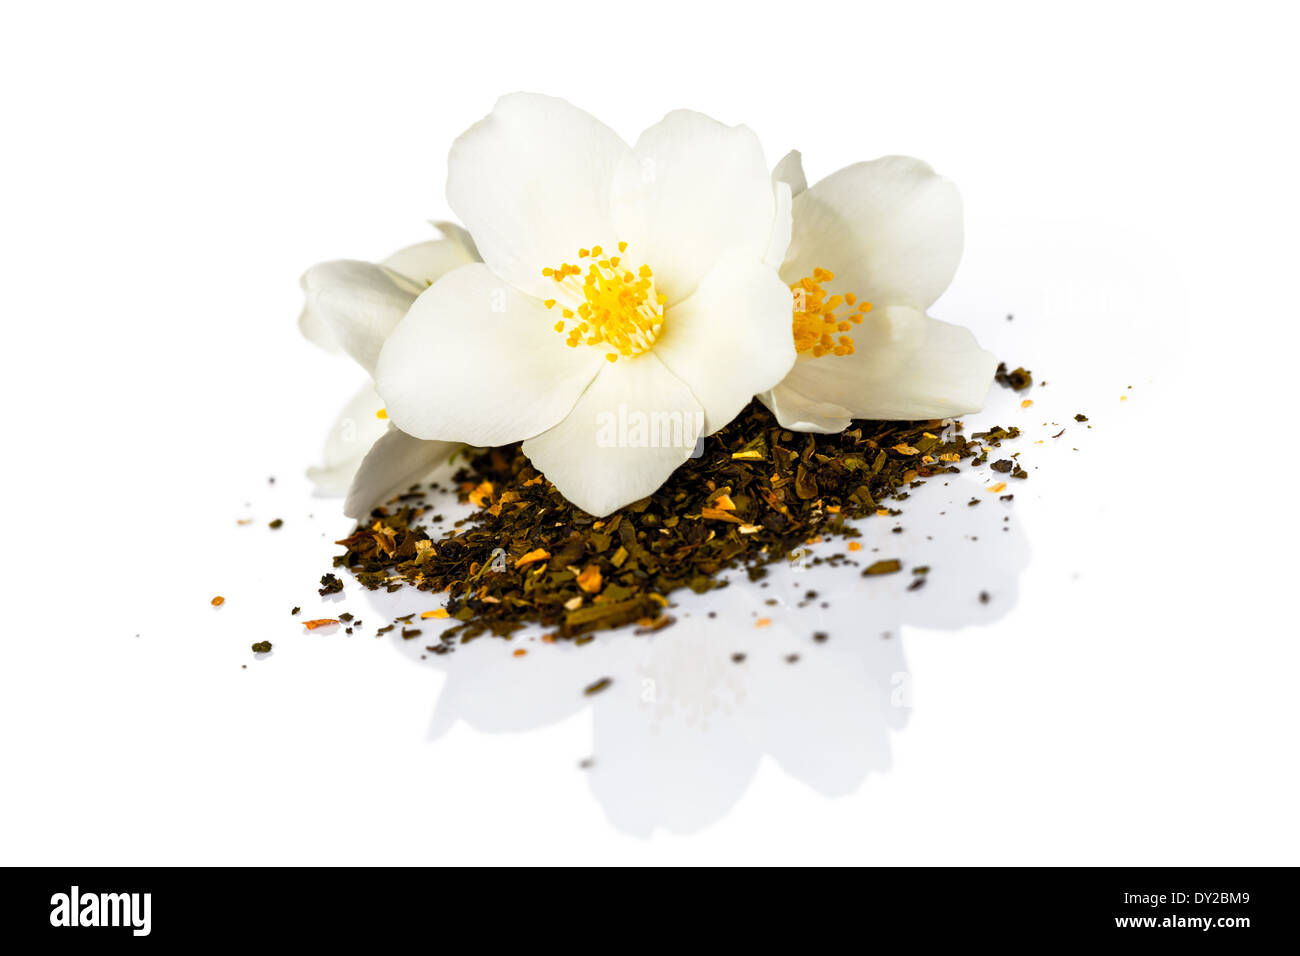 Jasmine Tea Dry Stock Photos Jasmine Tea Dry Stock Images Alamy